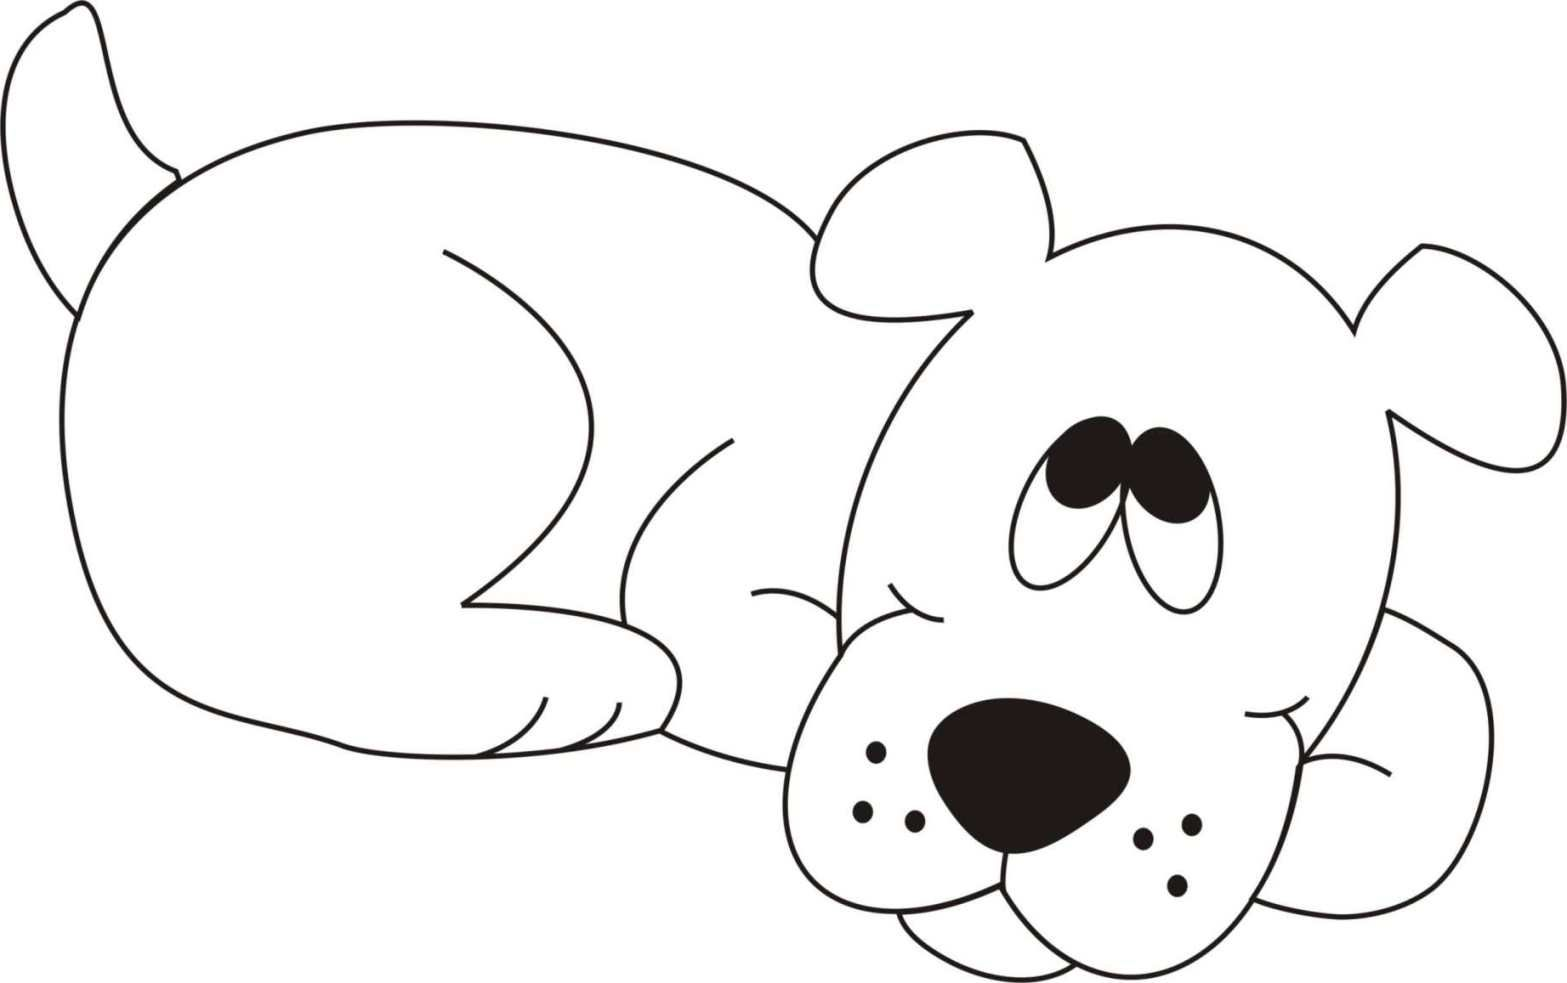 Dog Coloring Pages For Kids - Preschool Crafts | Dog Coloring Pages ...